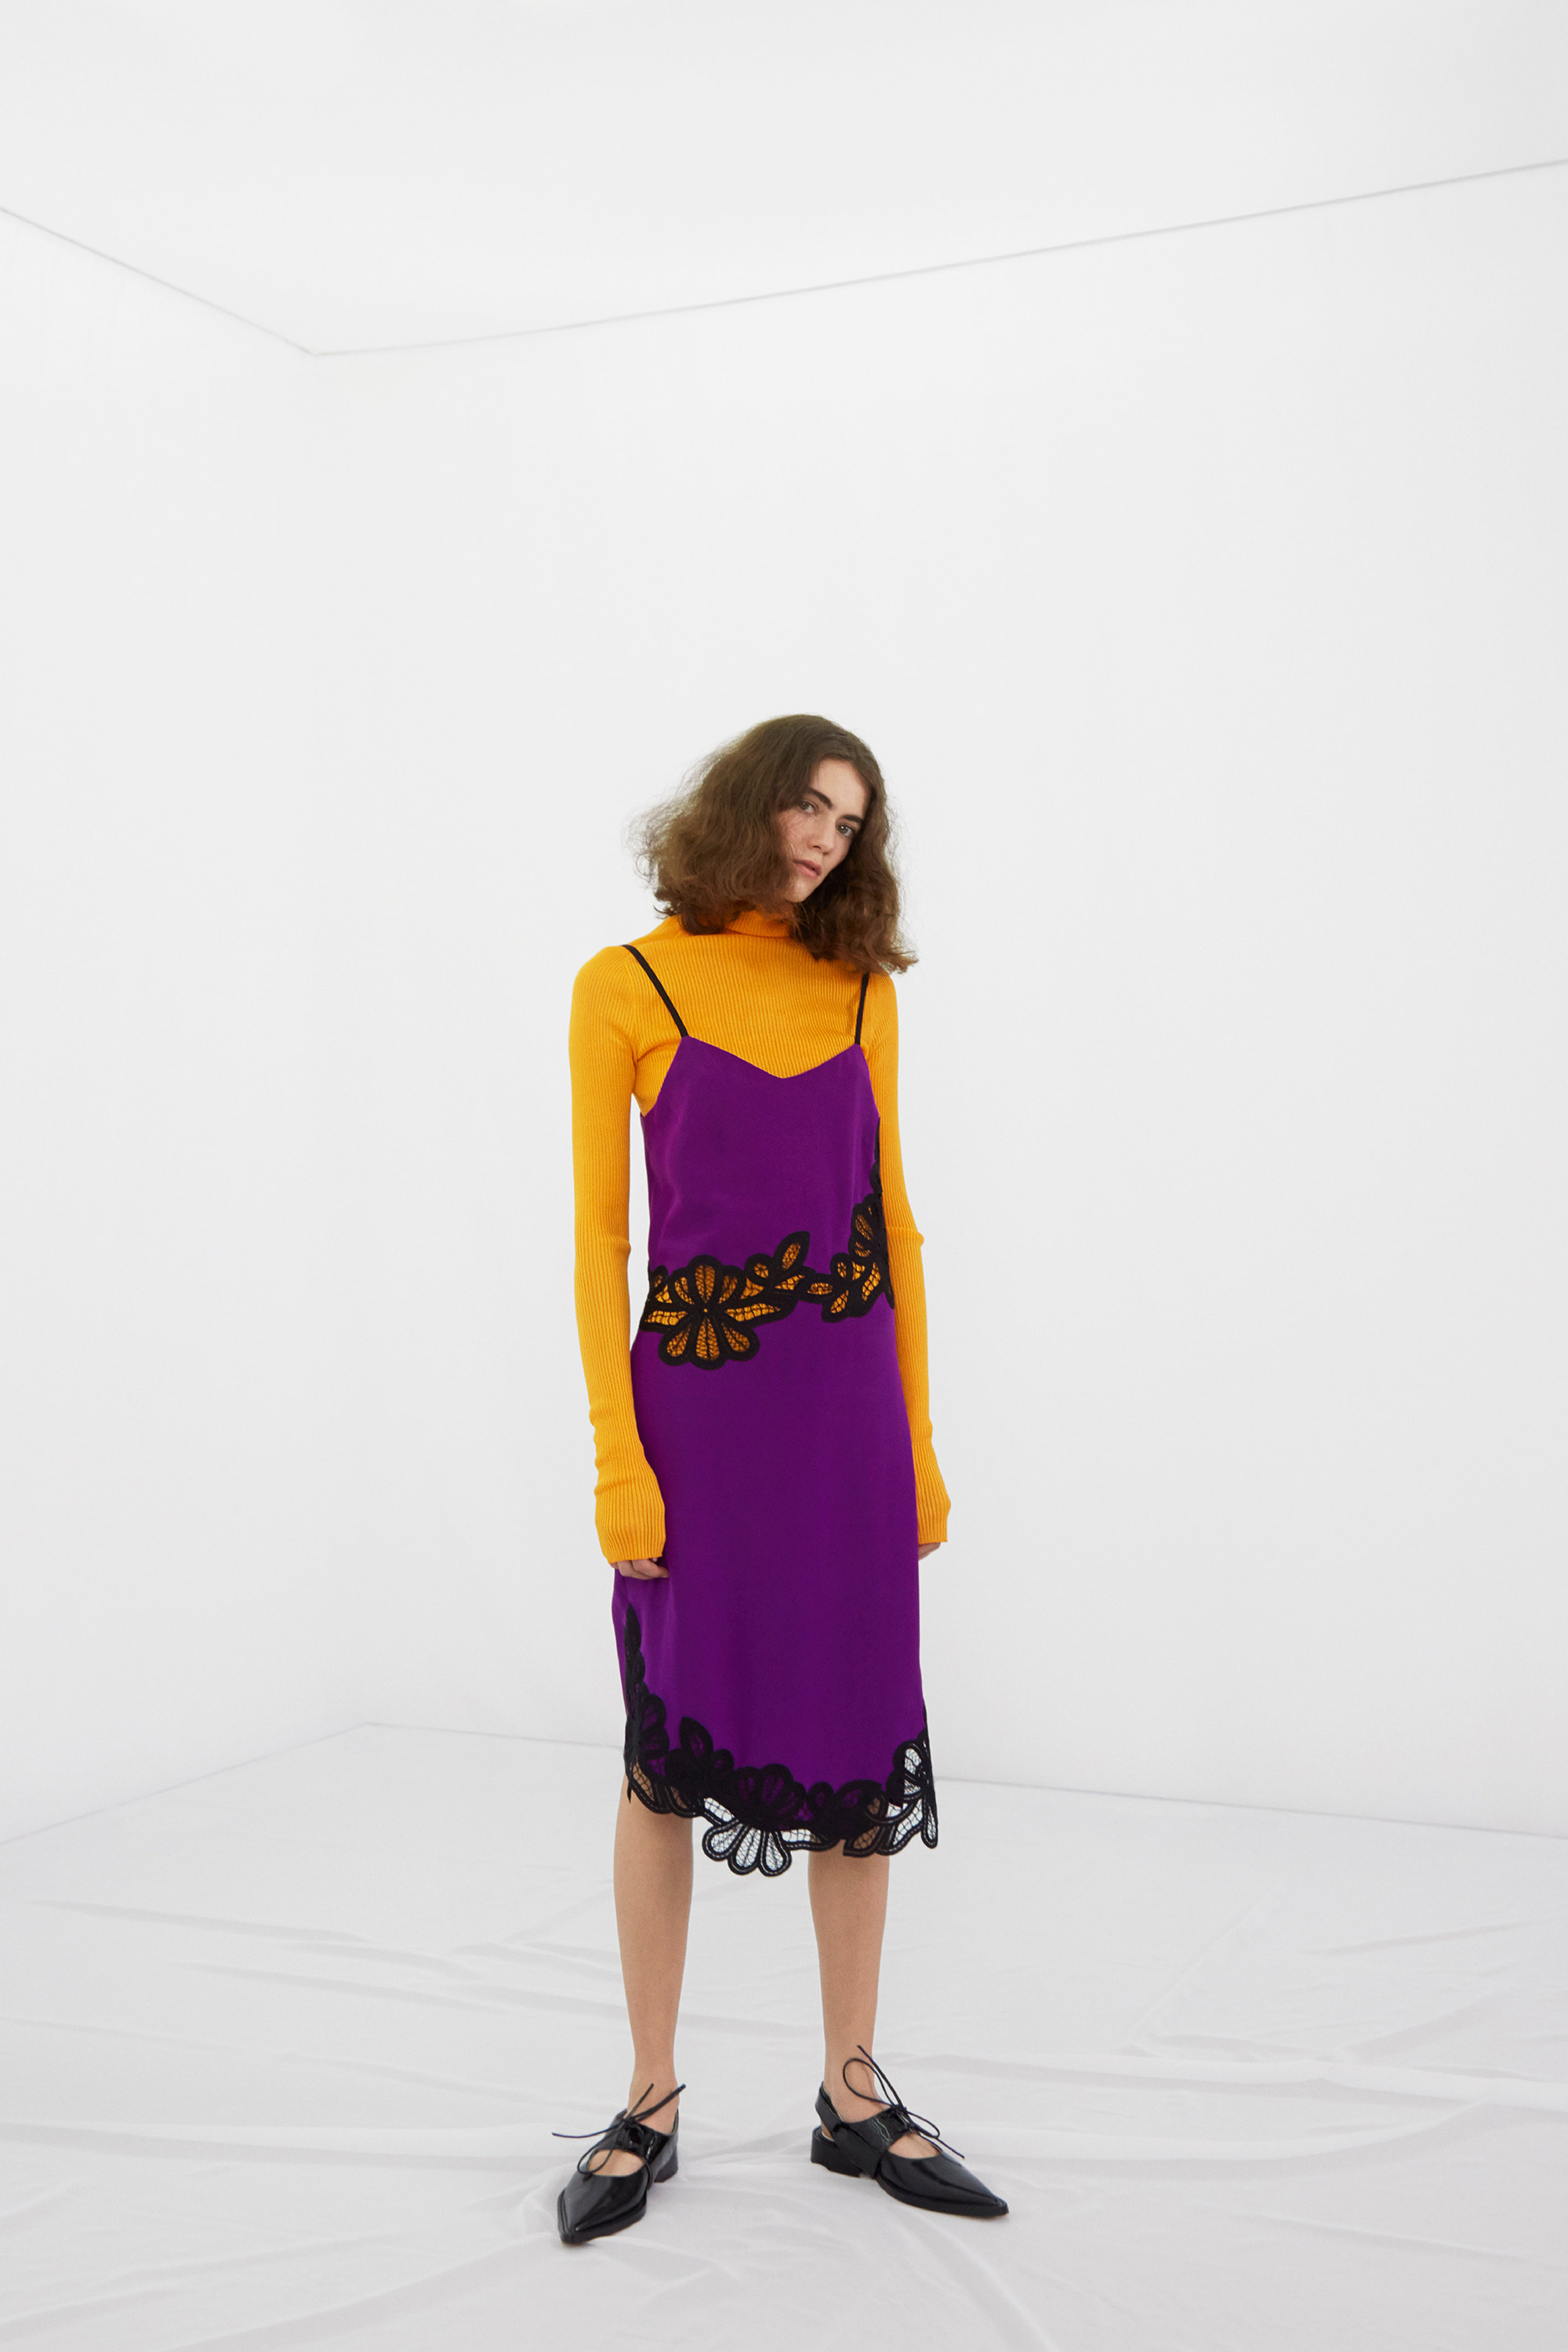 victoria-beckham-pre-fall-2016-lookbook-04.jpg